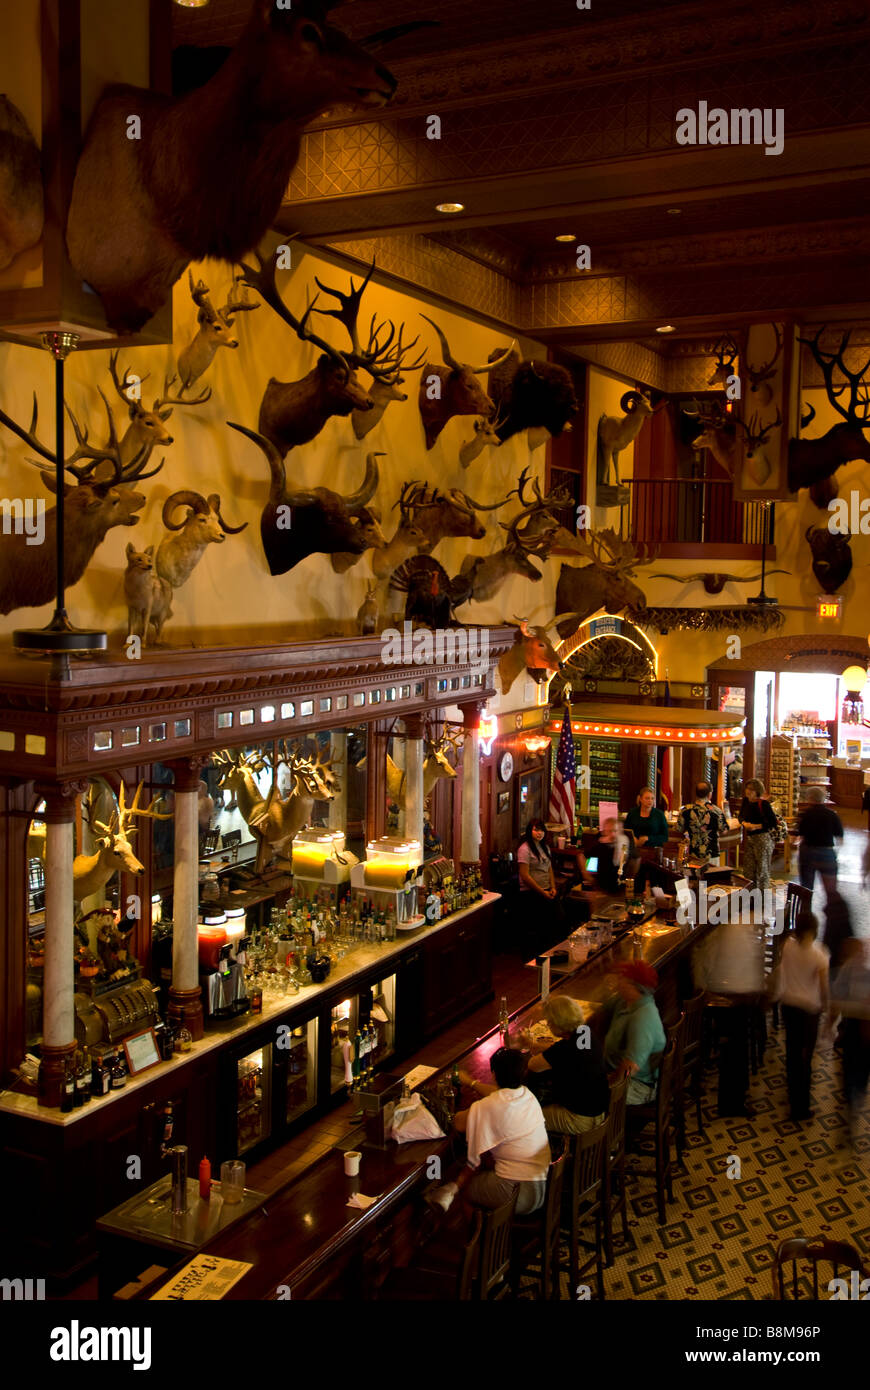 Buckhorn Saloon walnut 1890s bar above overview San Antonio Texas tx tourists at bar stuffed animal heads on wall - Stock Image